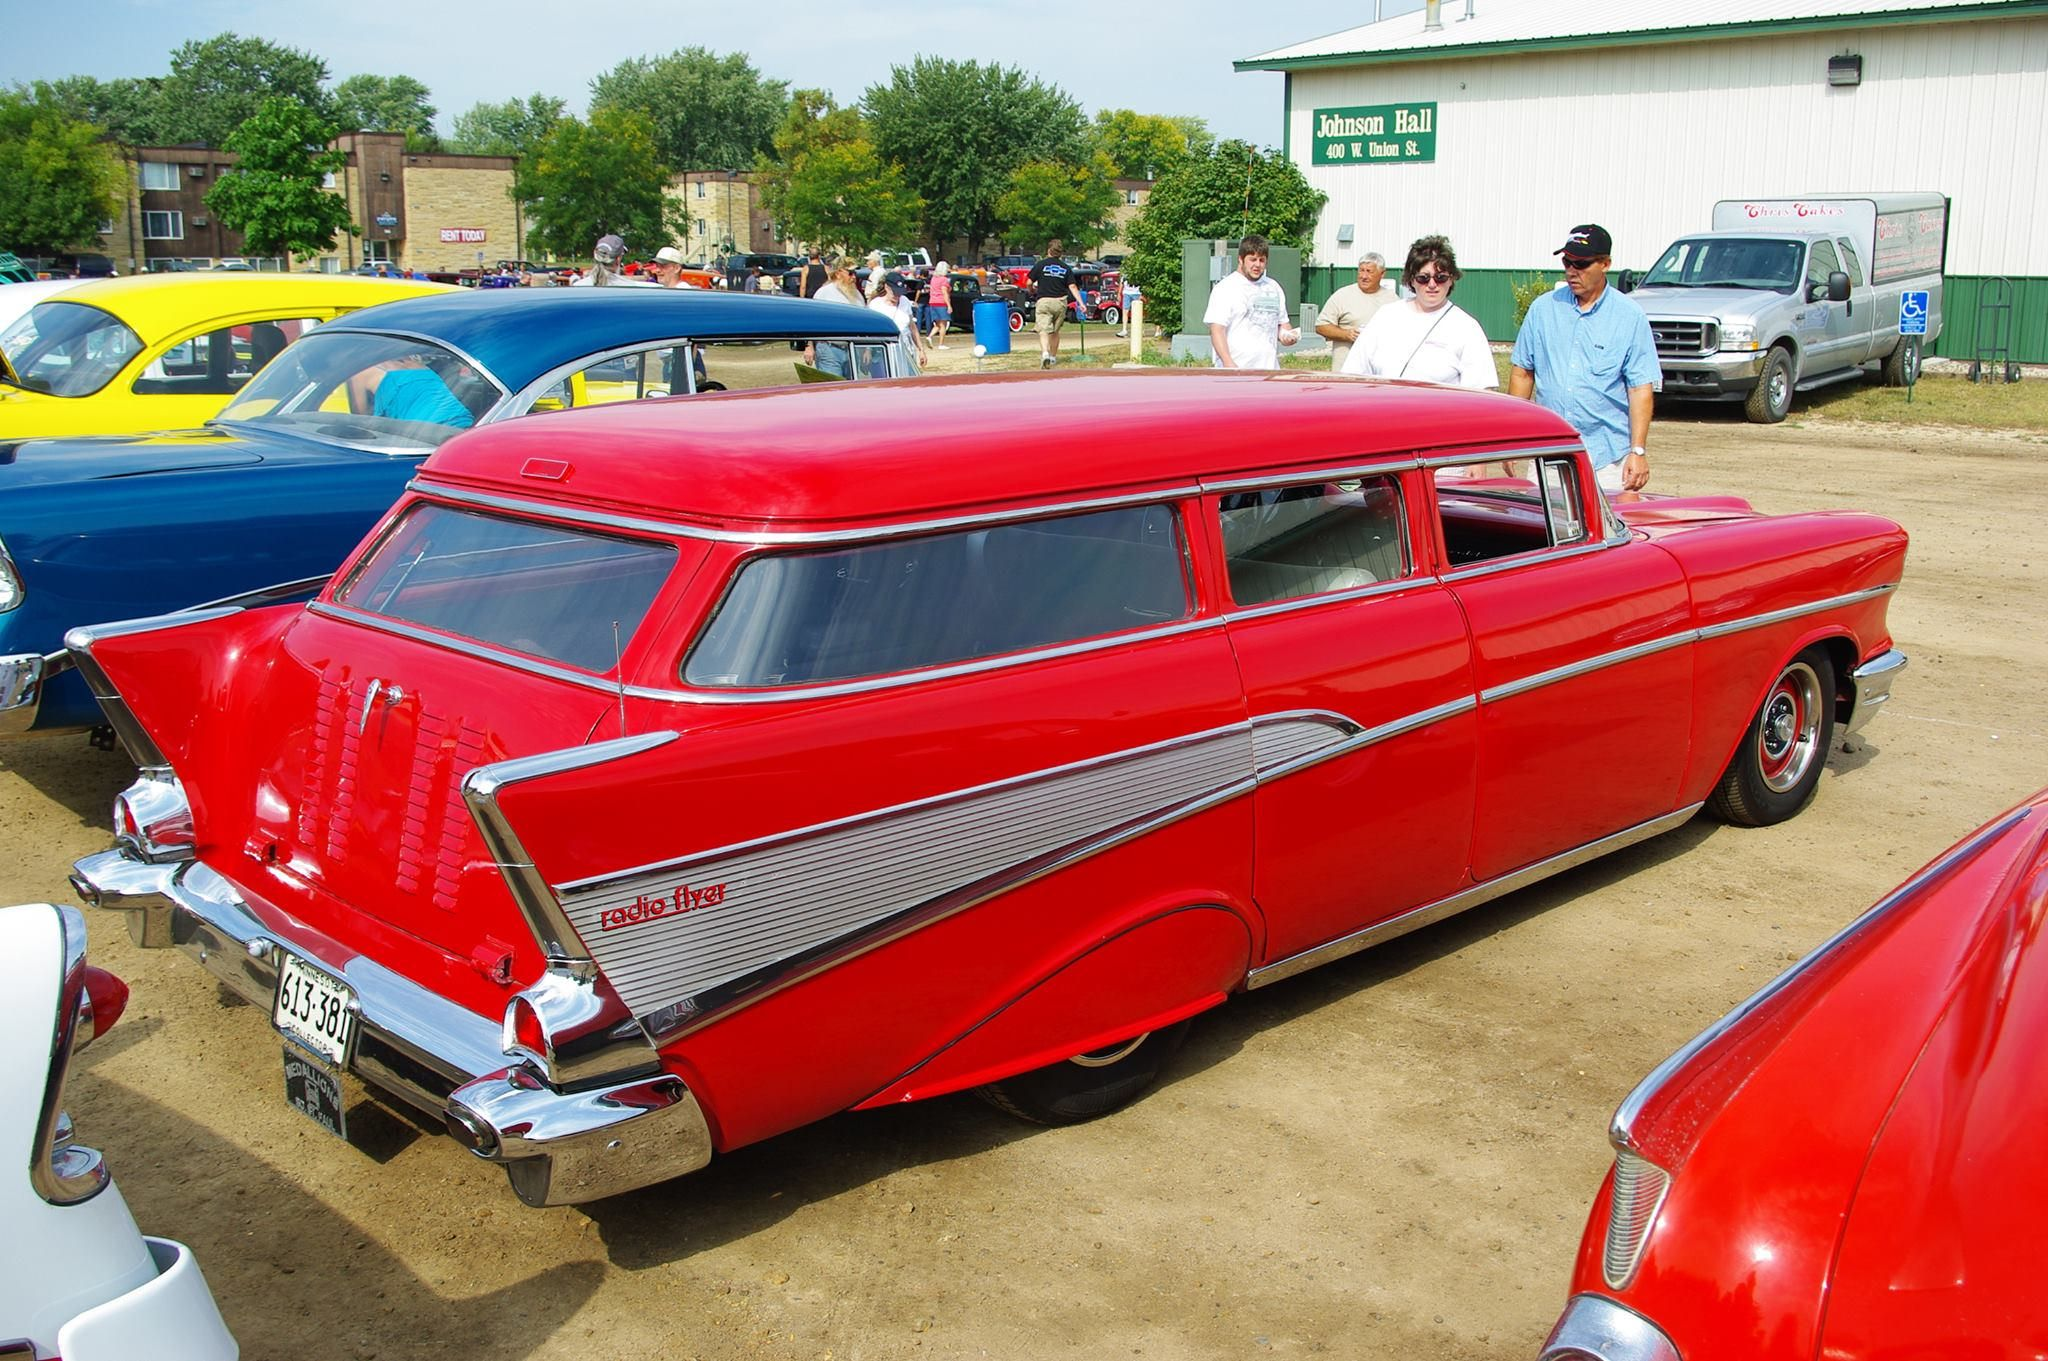 Chopped 57 Wagon | Wagons Rule | 1957 chevrolet, Old wagons